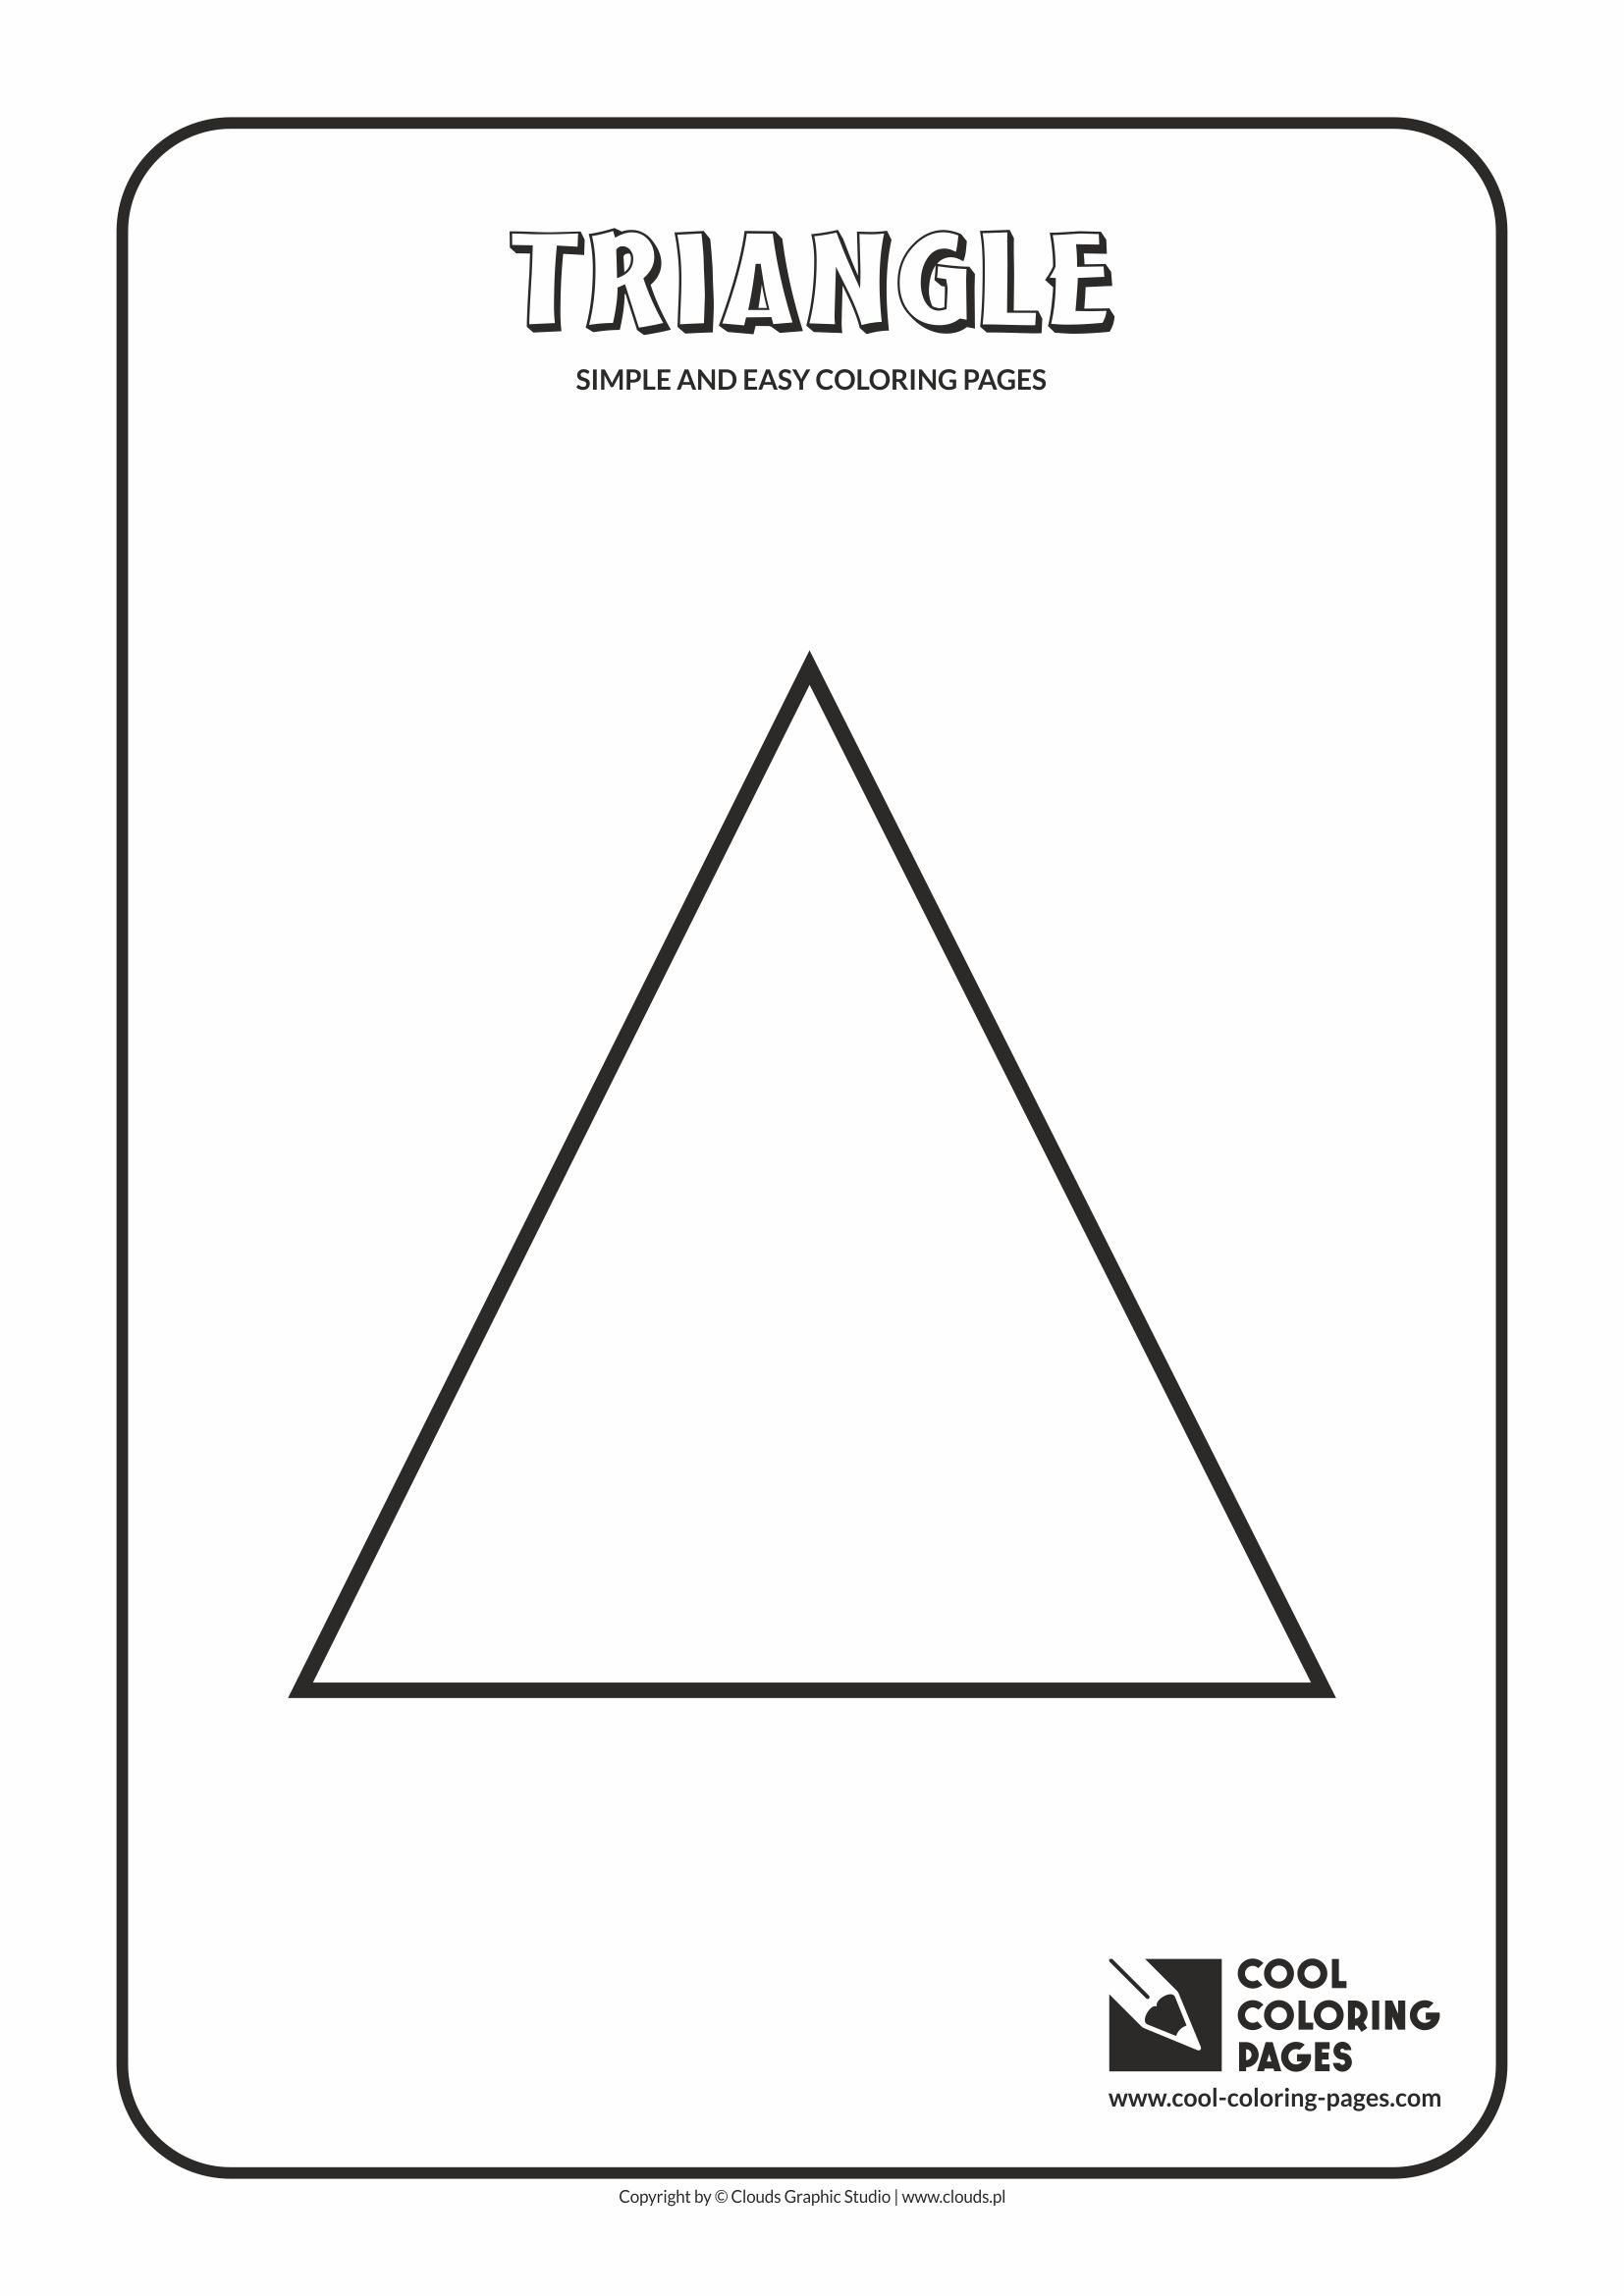 Simple and easy coloring pages for toddlers - Triangle